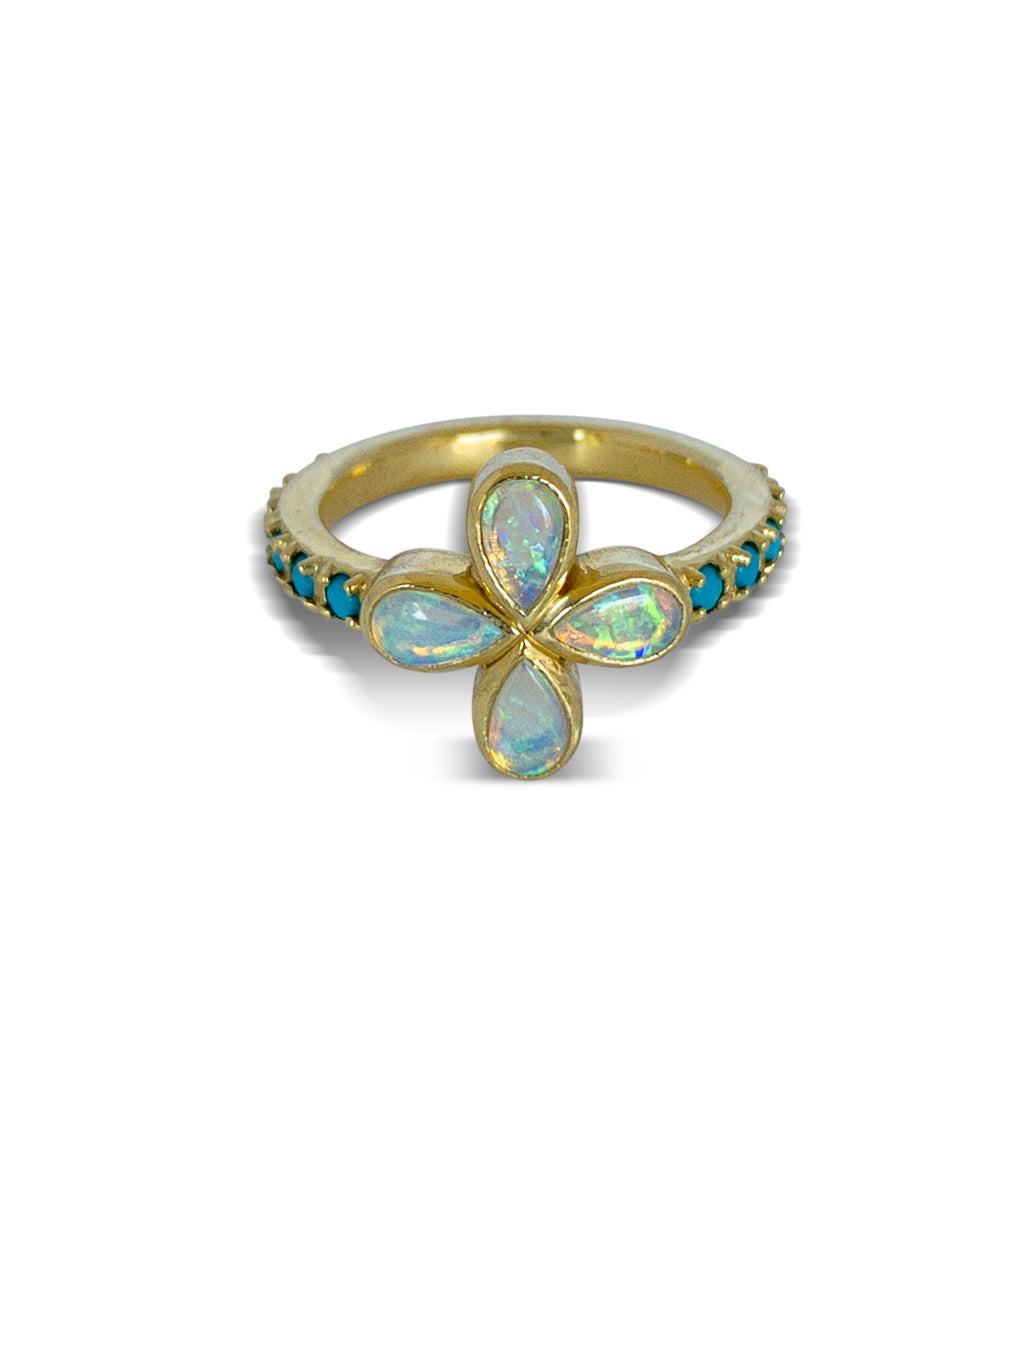 Opal and Turquoise Flower ring